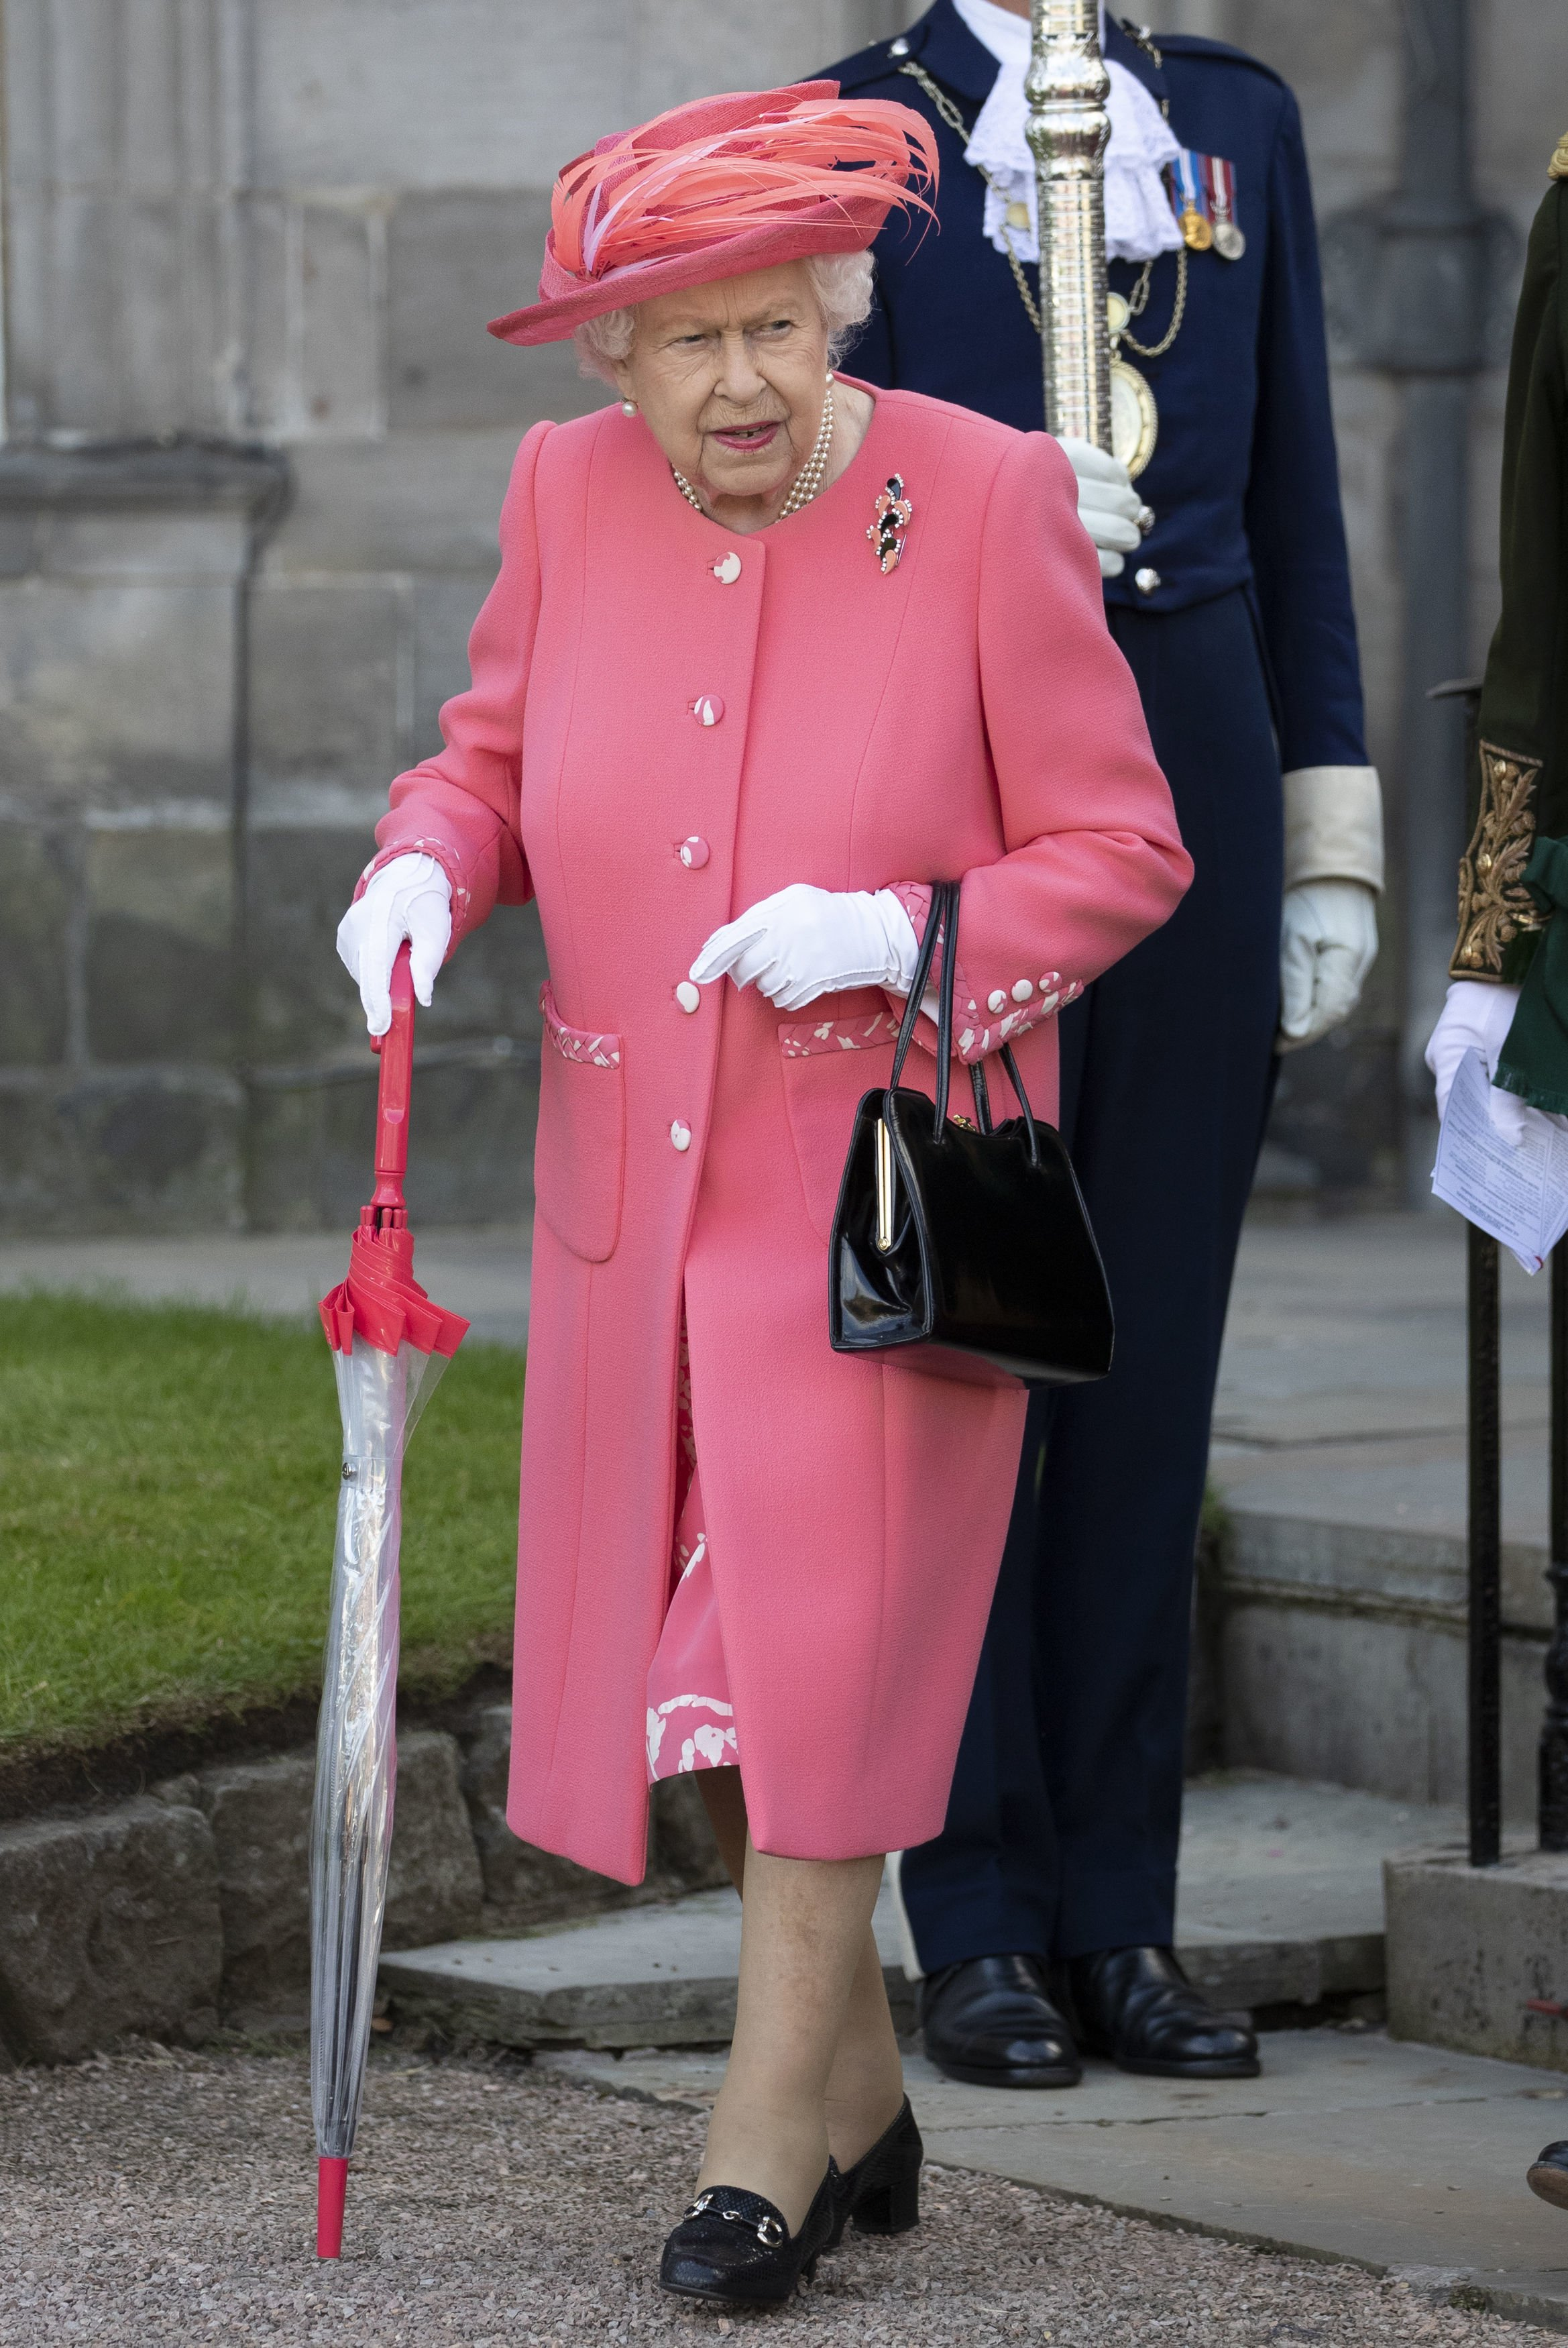 La reine Elizabeth participe à une Garden Party au Palais de Holyroodhouse en Ecosse en juillet 2019 | Photo : Getty Images